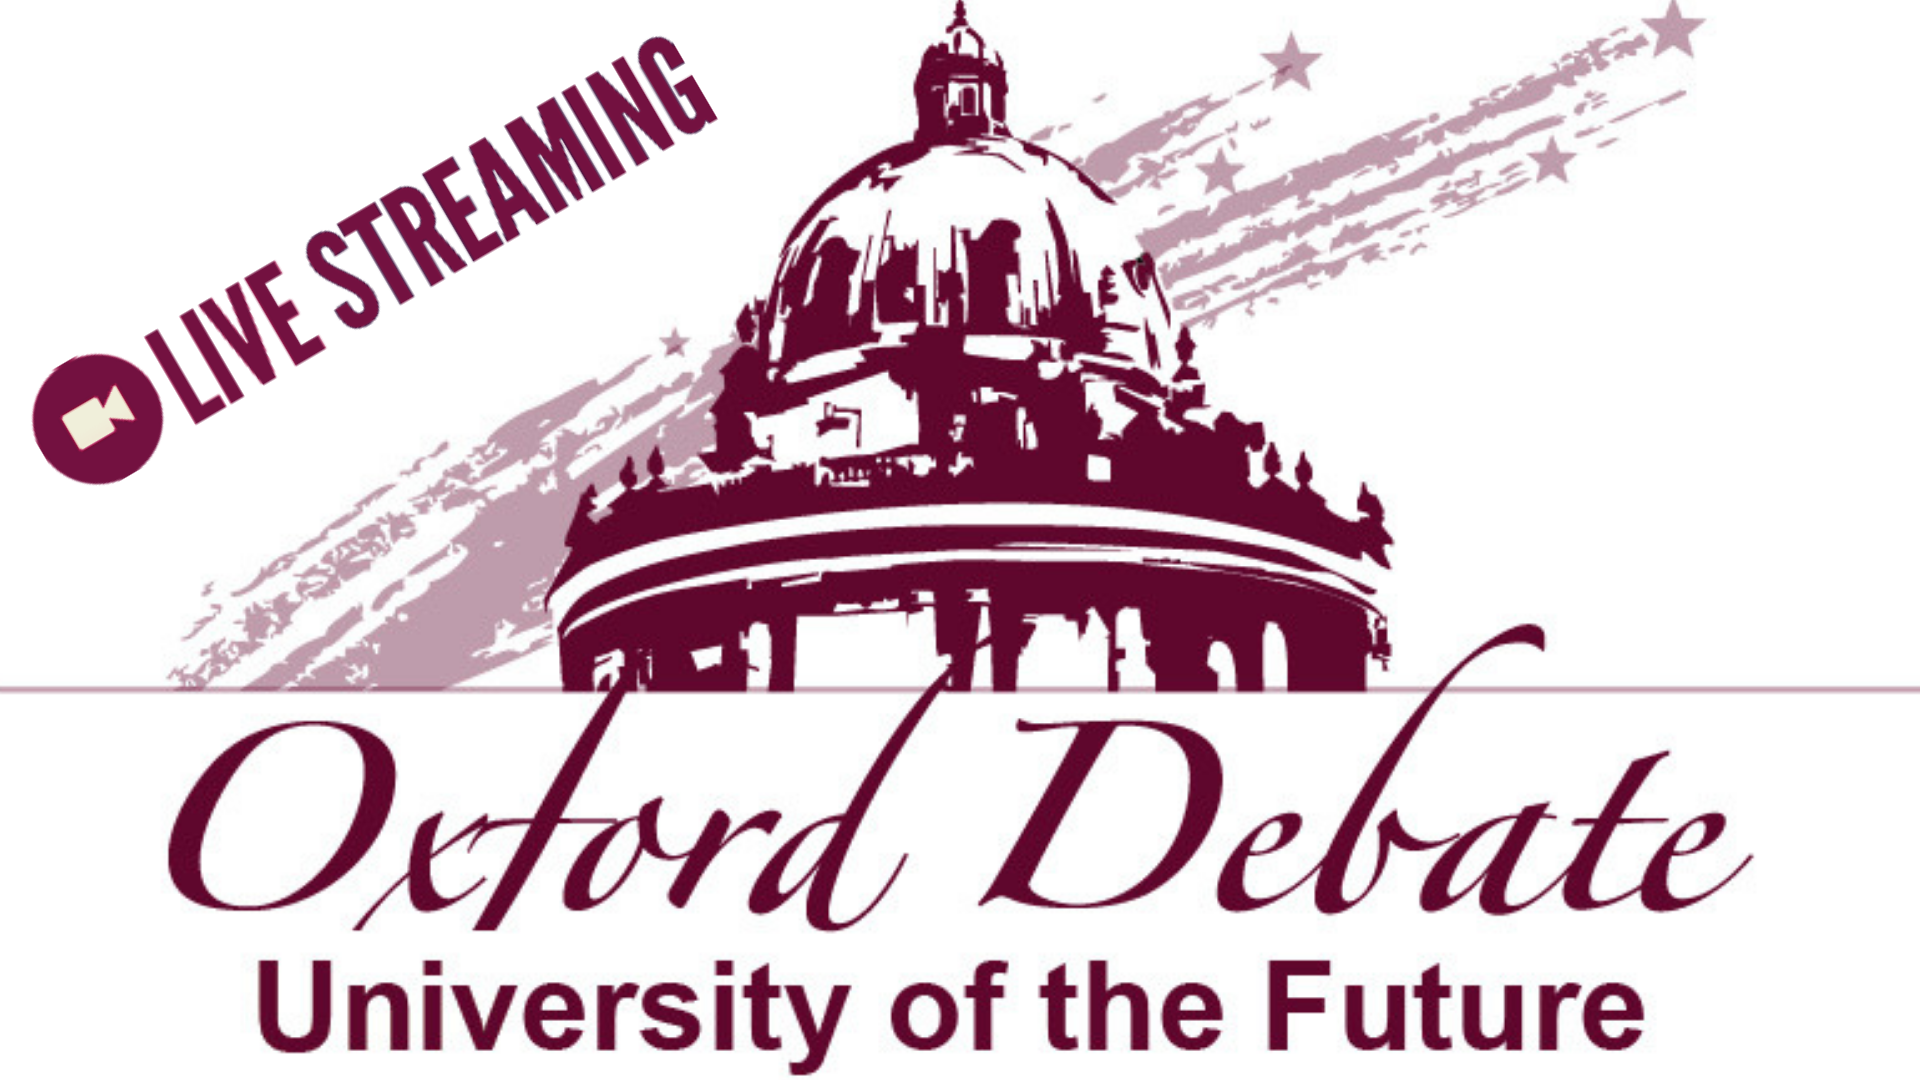 'OXFORD DEBATE'